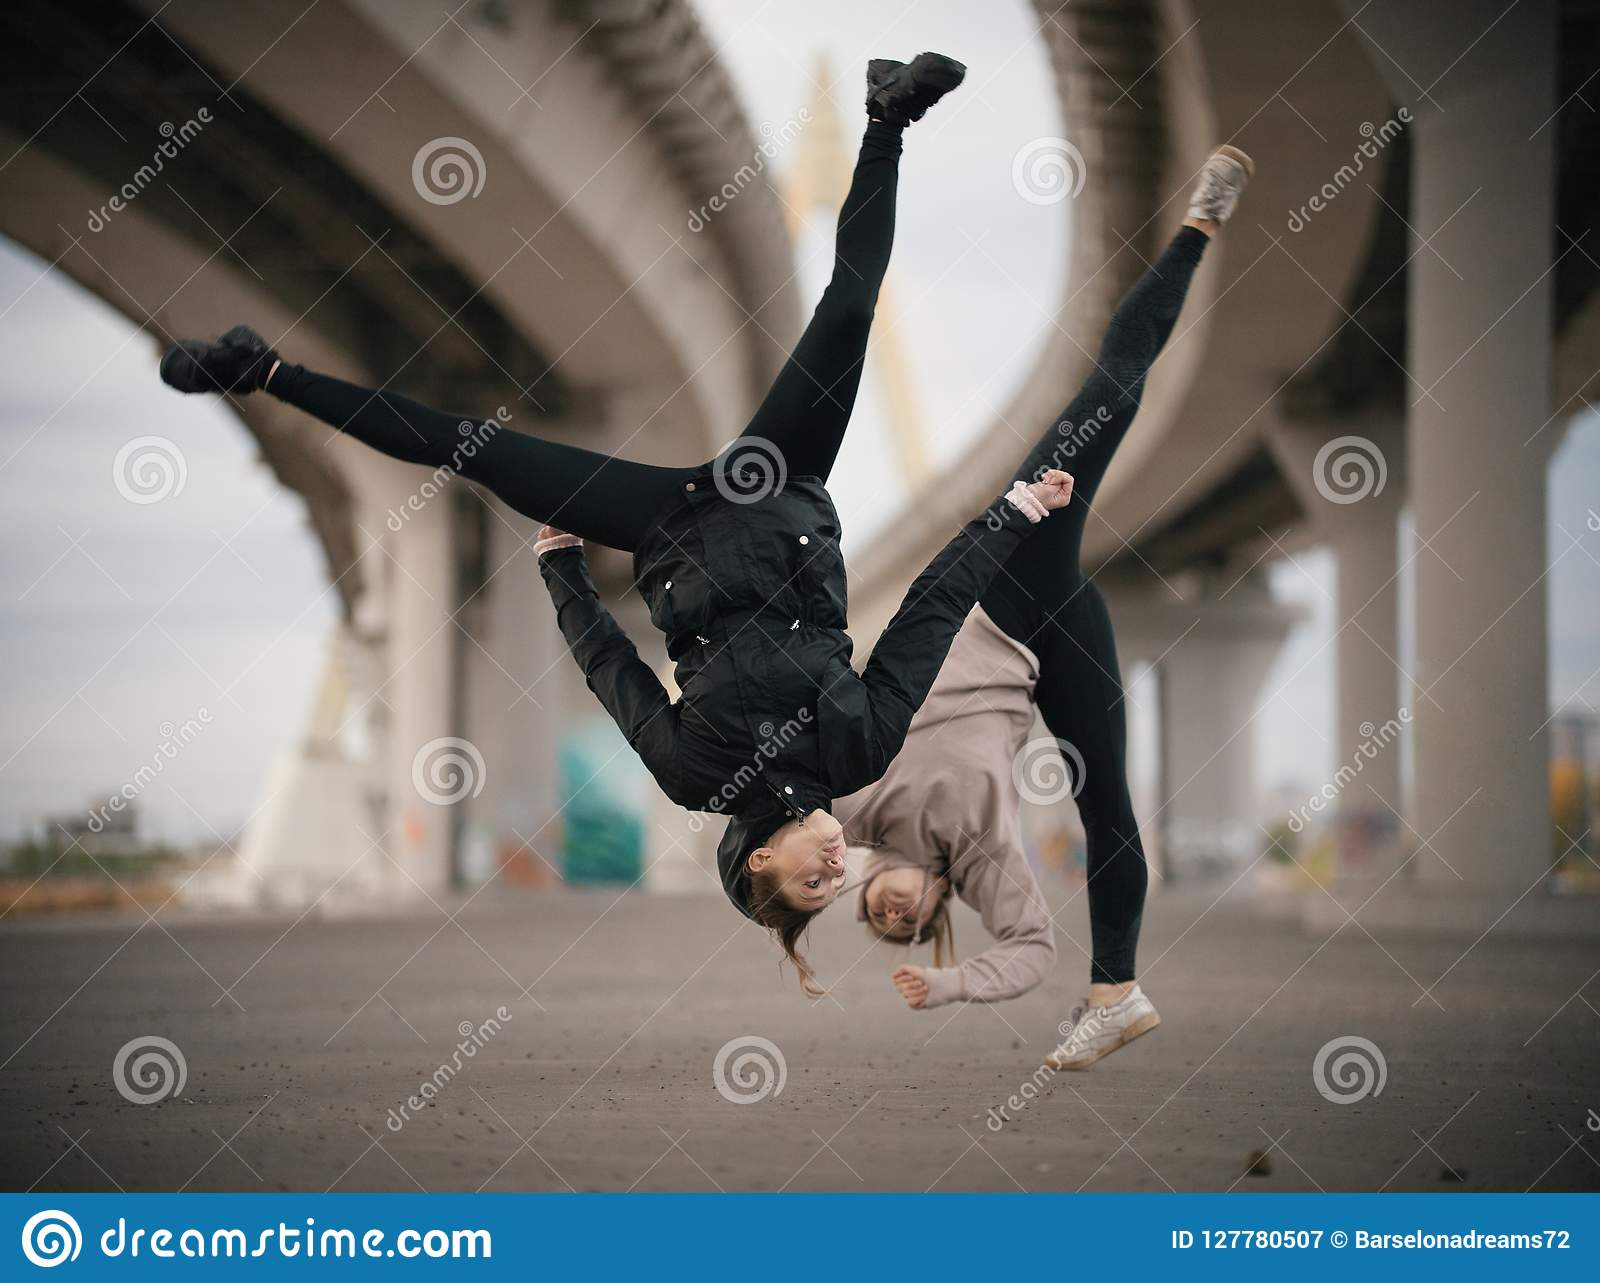 Girls perform splits in the air while jumping on the urban background of the bridge